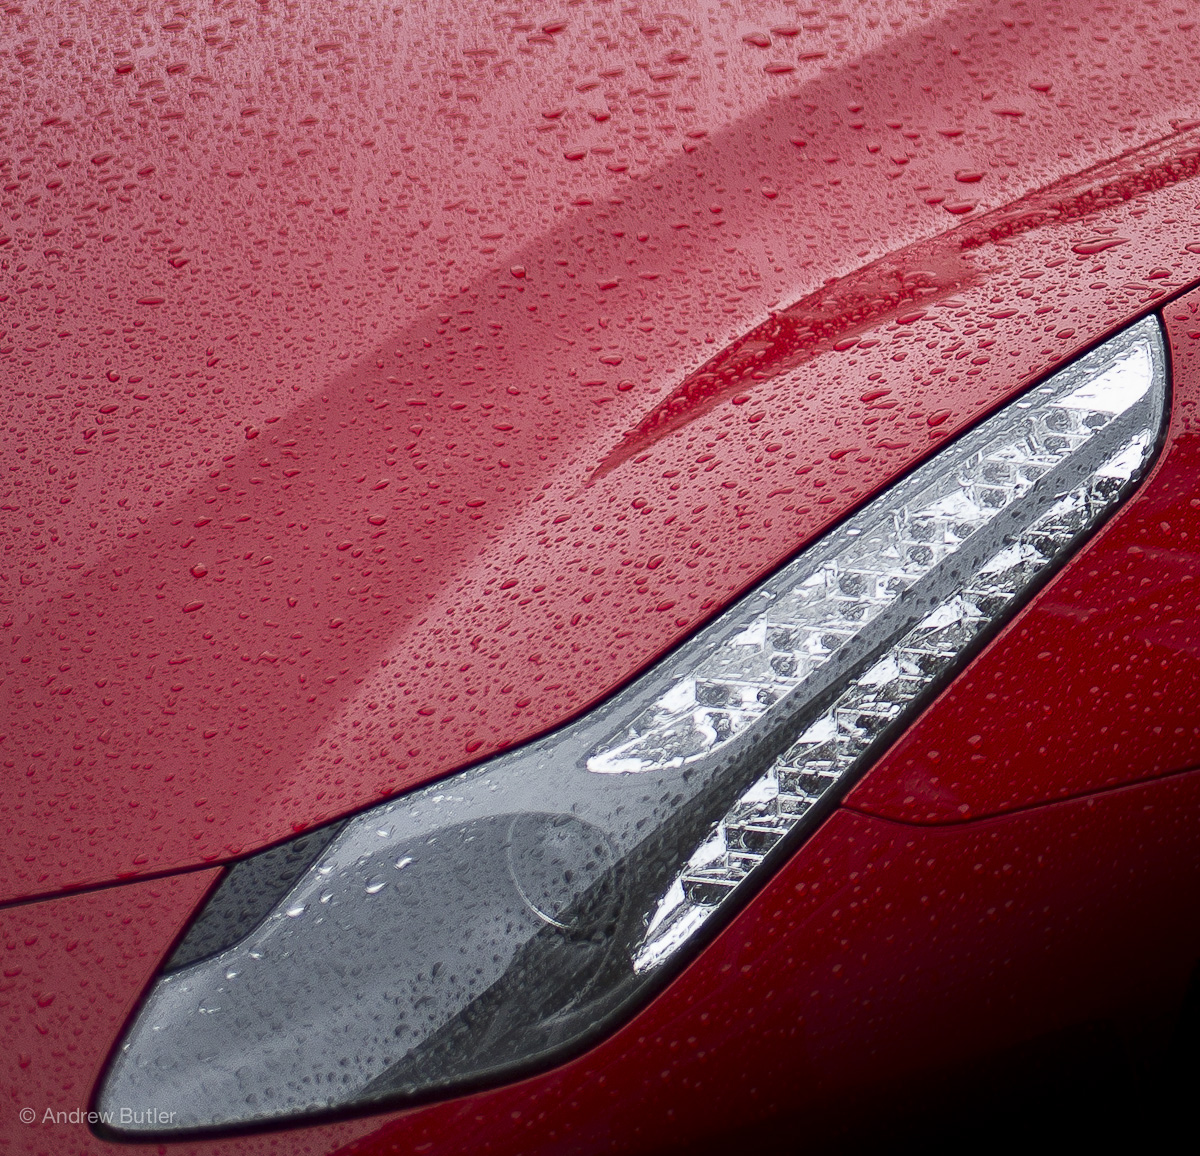 Ferrari FF (Detail) photographed by Andrew Butler